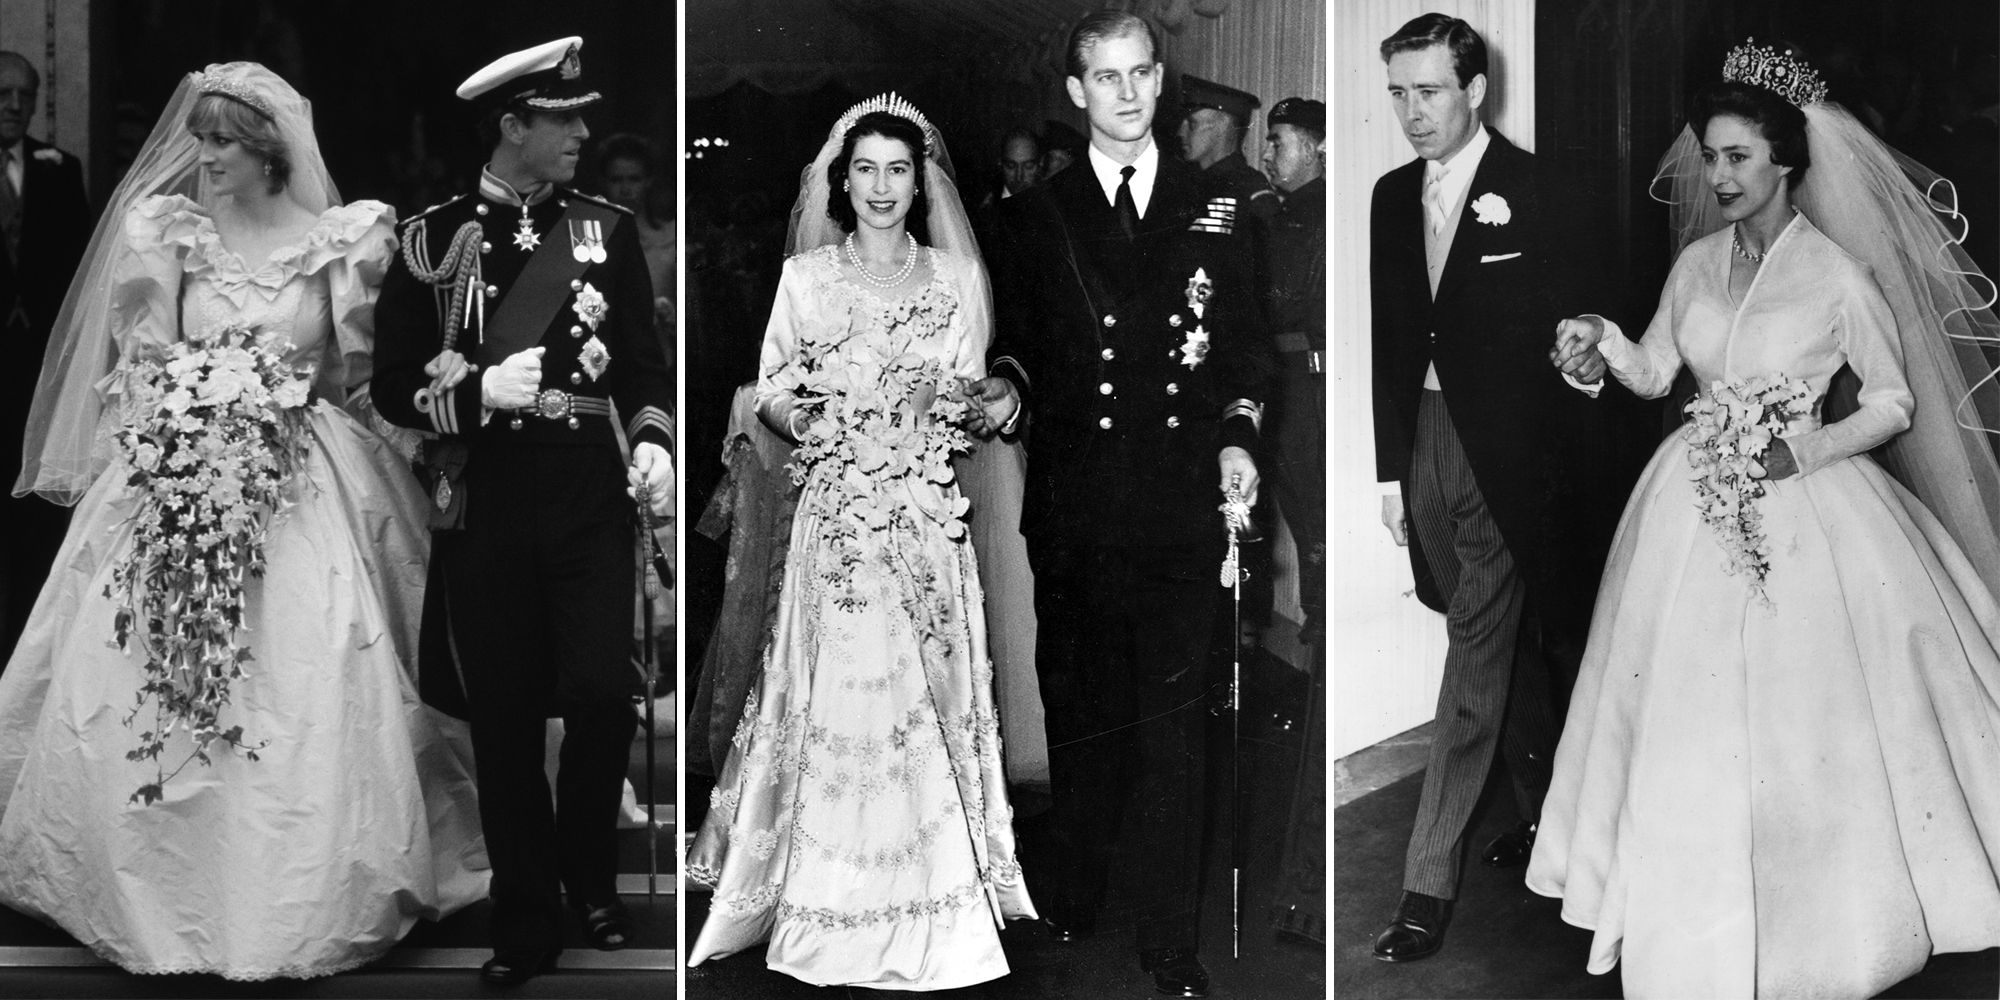 One Queen S Lane Simple Wedding Dresses: Royal Wedding Dresses: 13 Of The Most Stunning Gowns Worn